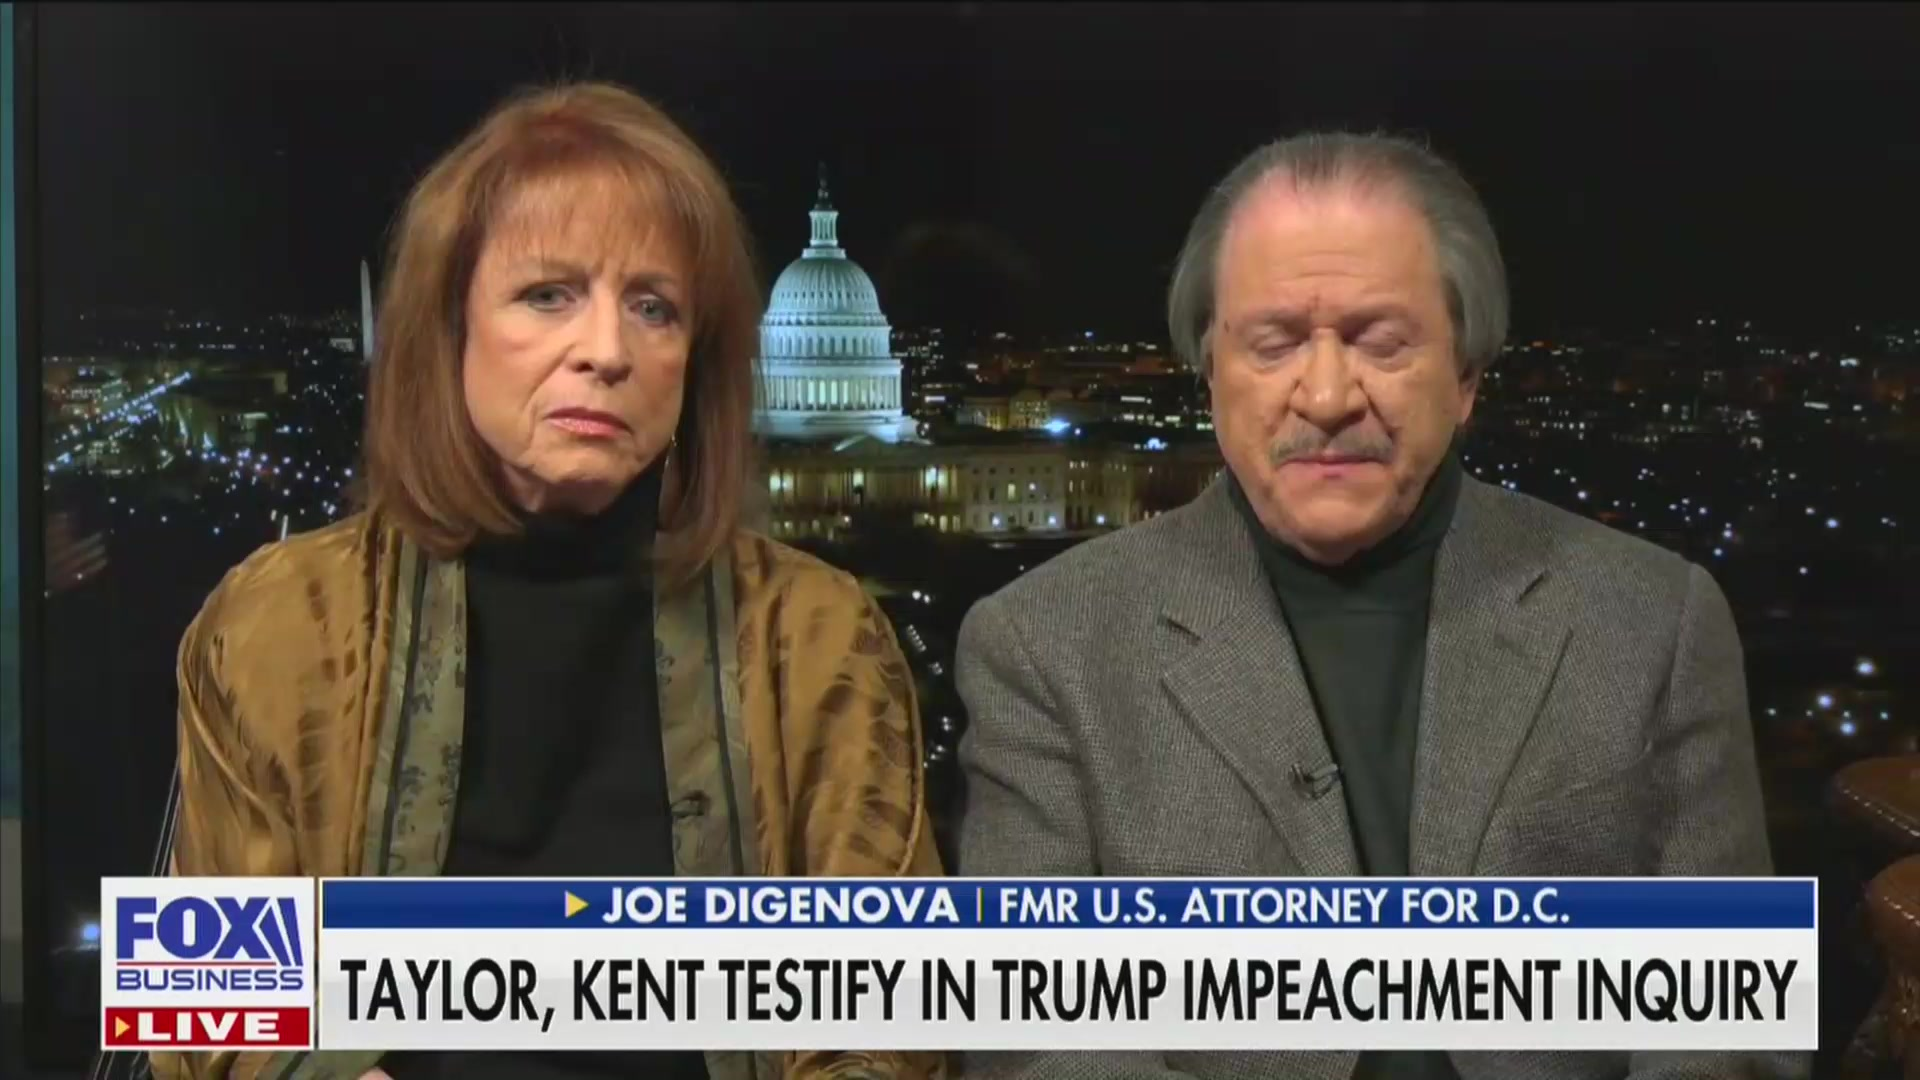 Joe diGenova Tells Lou Dobbs: George Soros 'Controls a Very Large Part' of the State Department